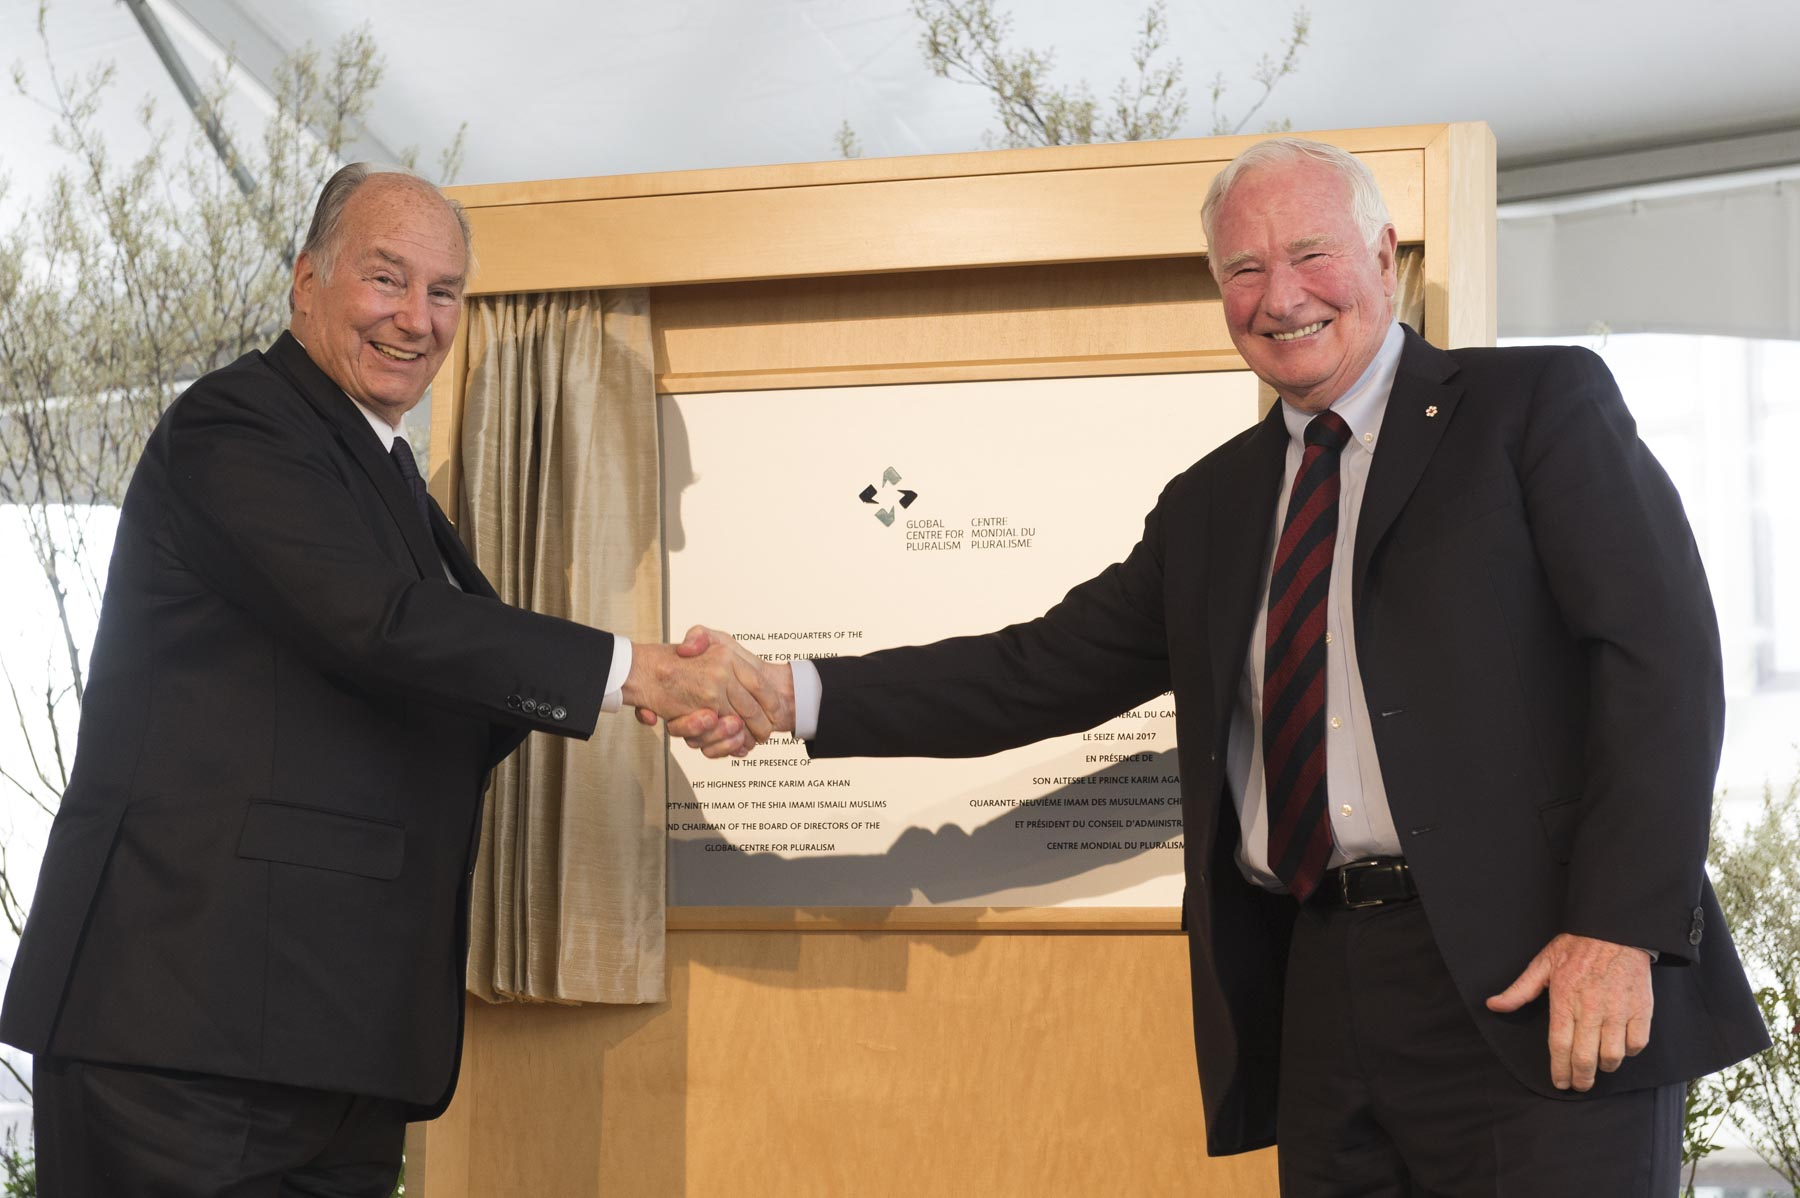 The Governor General and His Highness the Aga Khan unveiled a plaque commemorating the official opening of the new International Headquarters for the Global Centre for Pluralism.